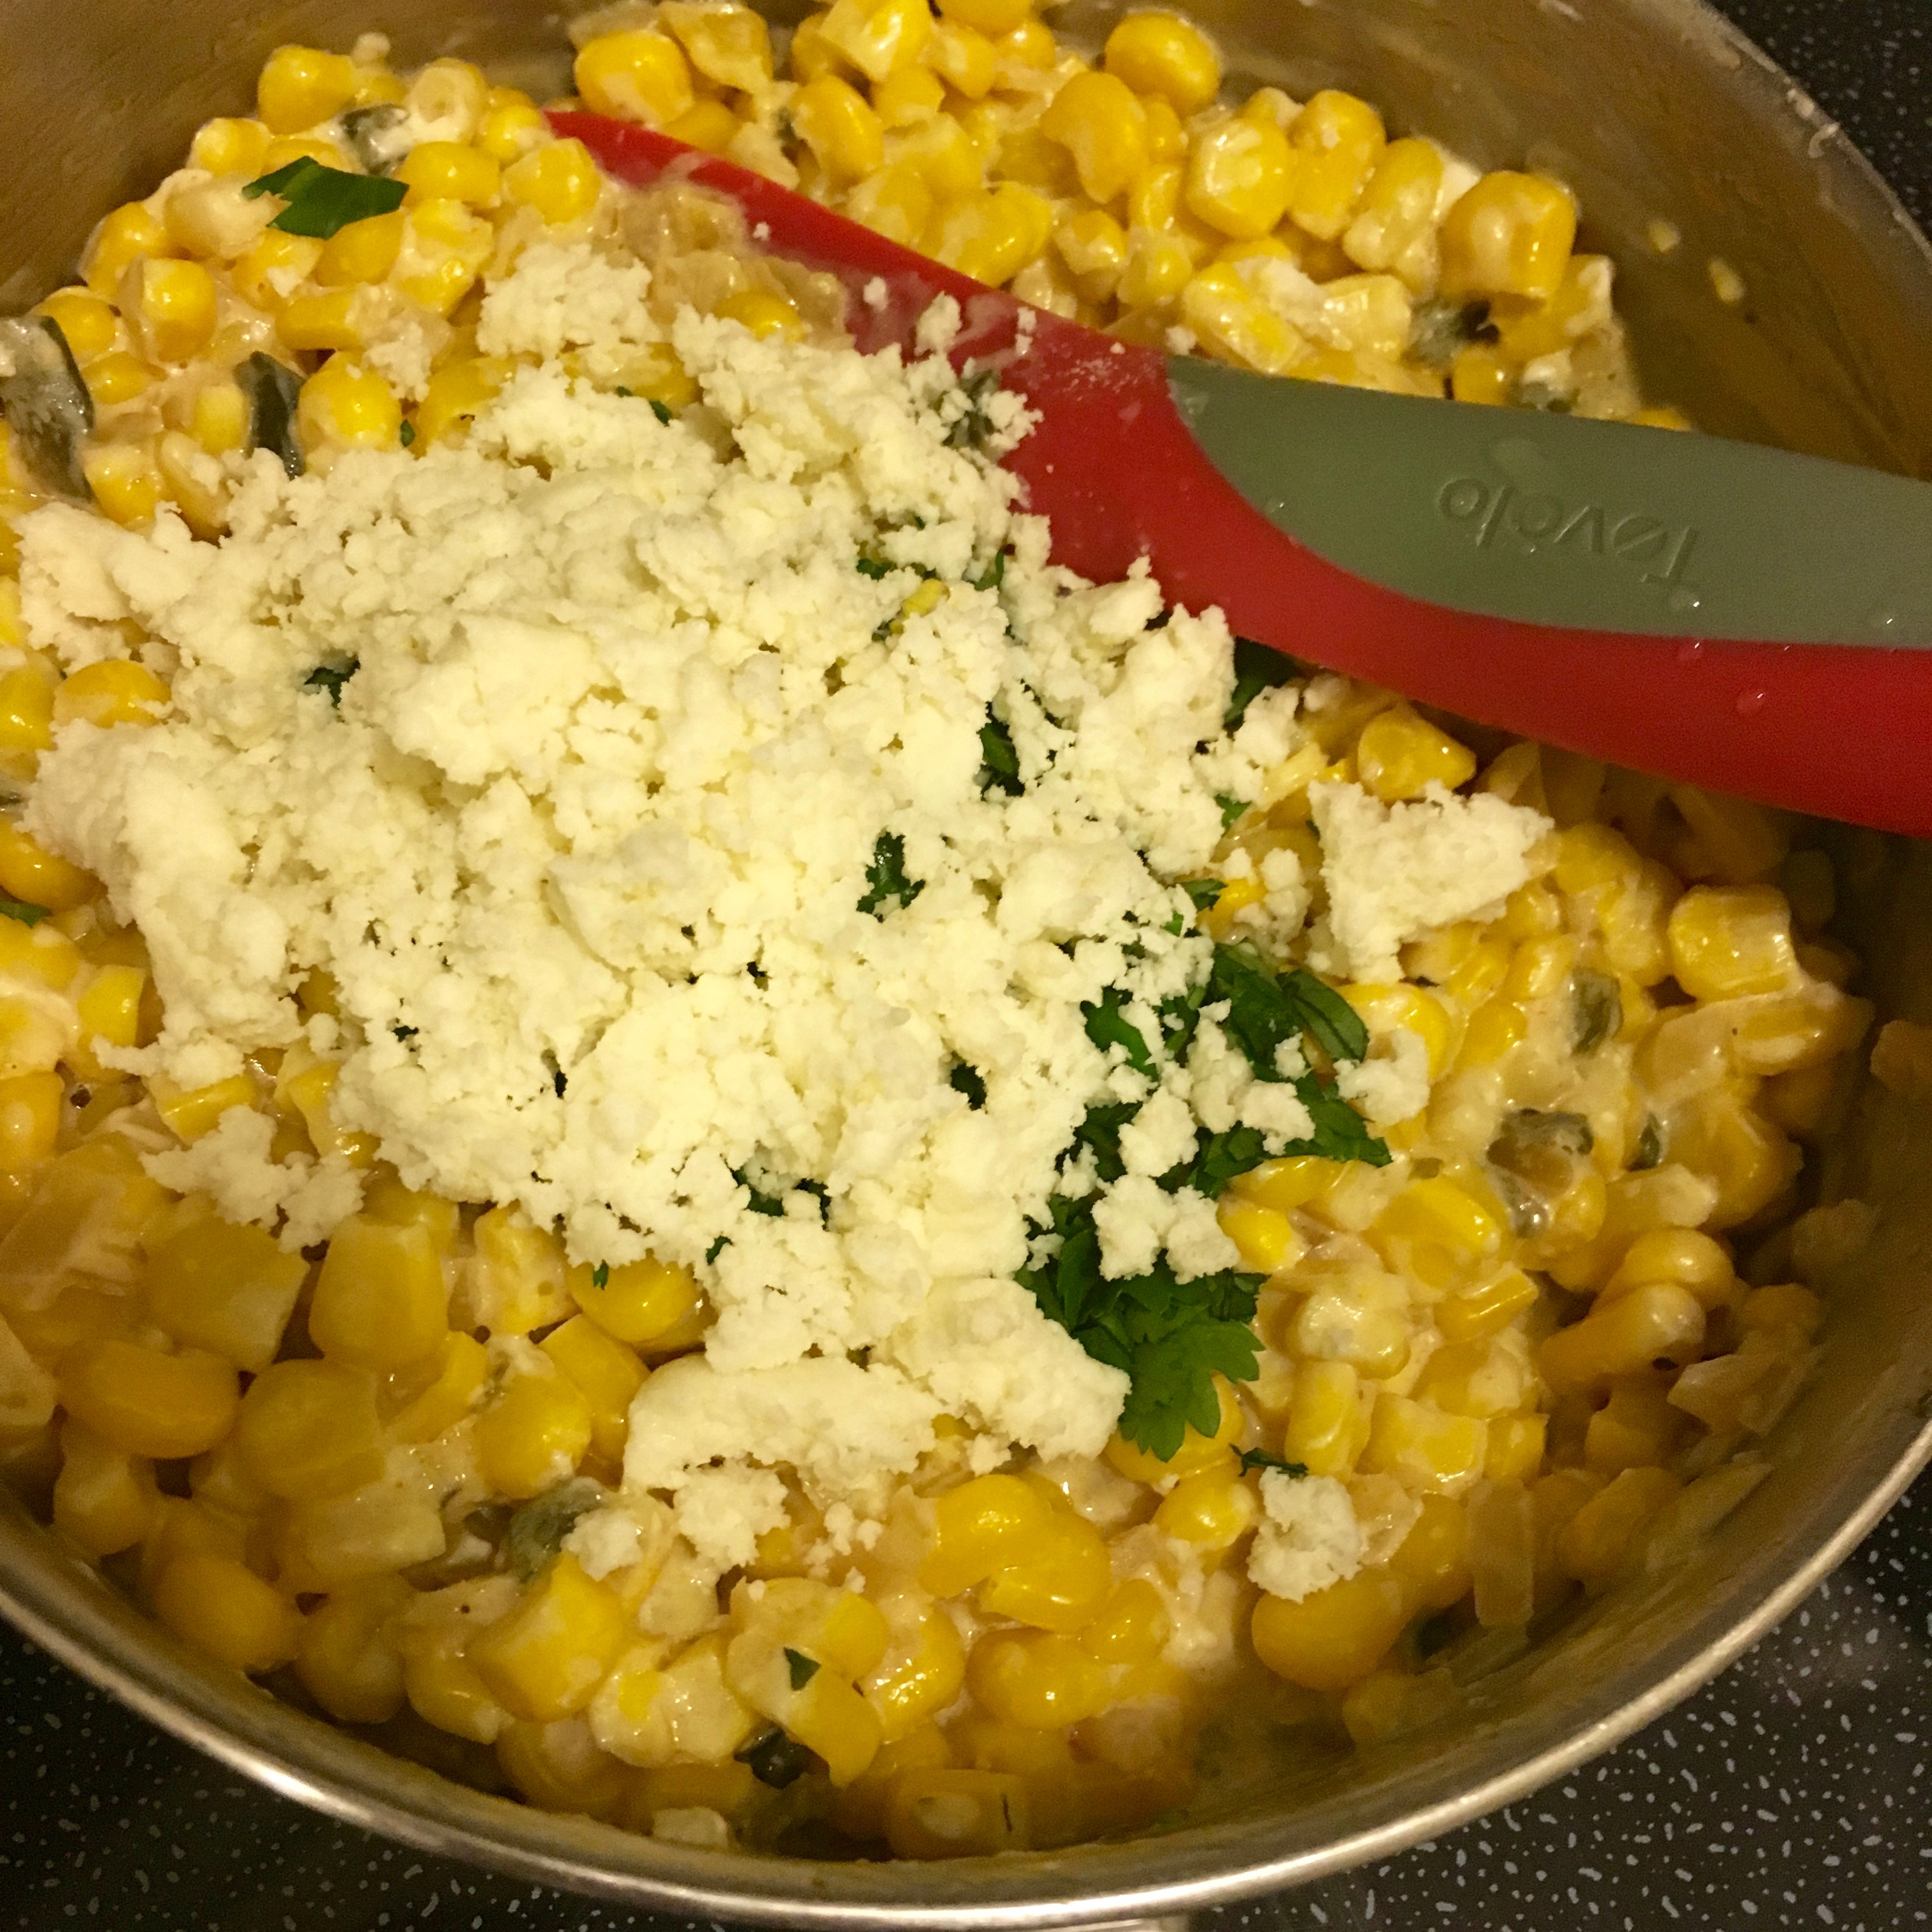 A One Pot Side Dish To Accompany Your Favorite Mexican